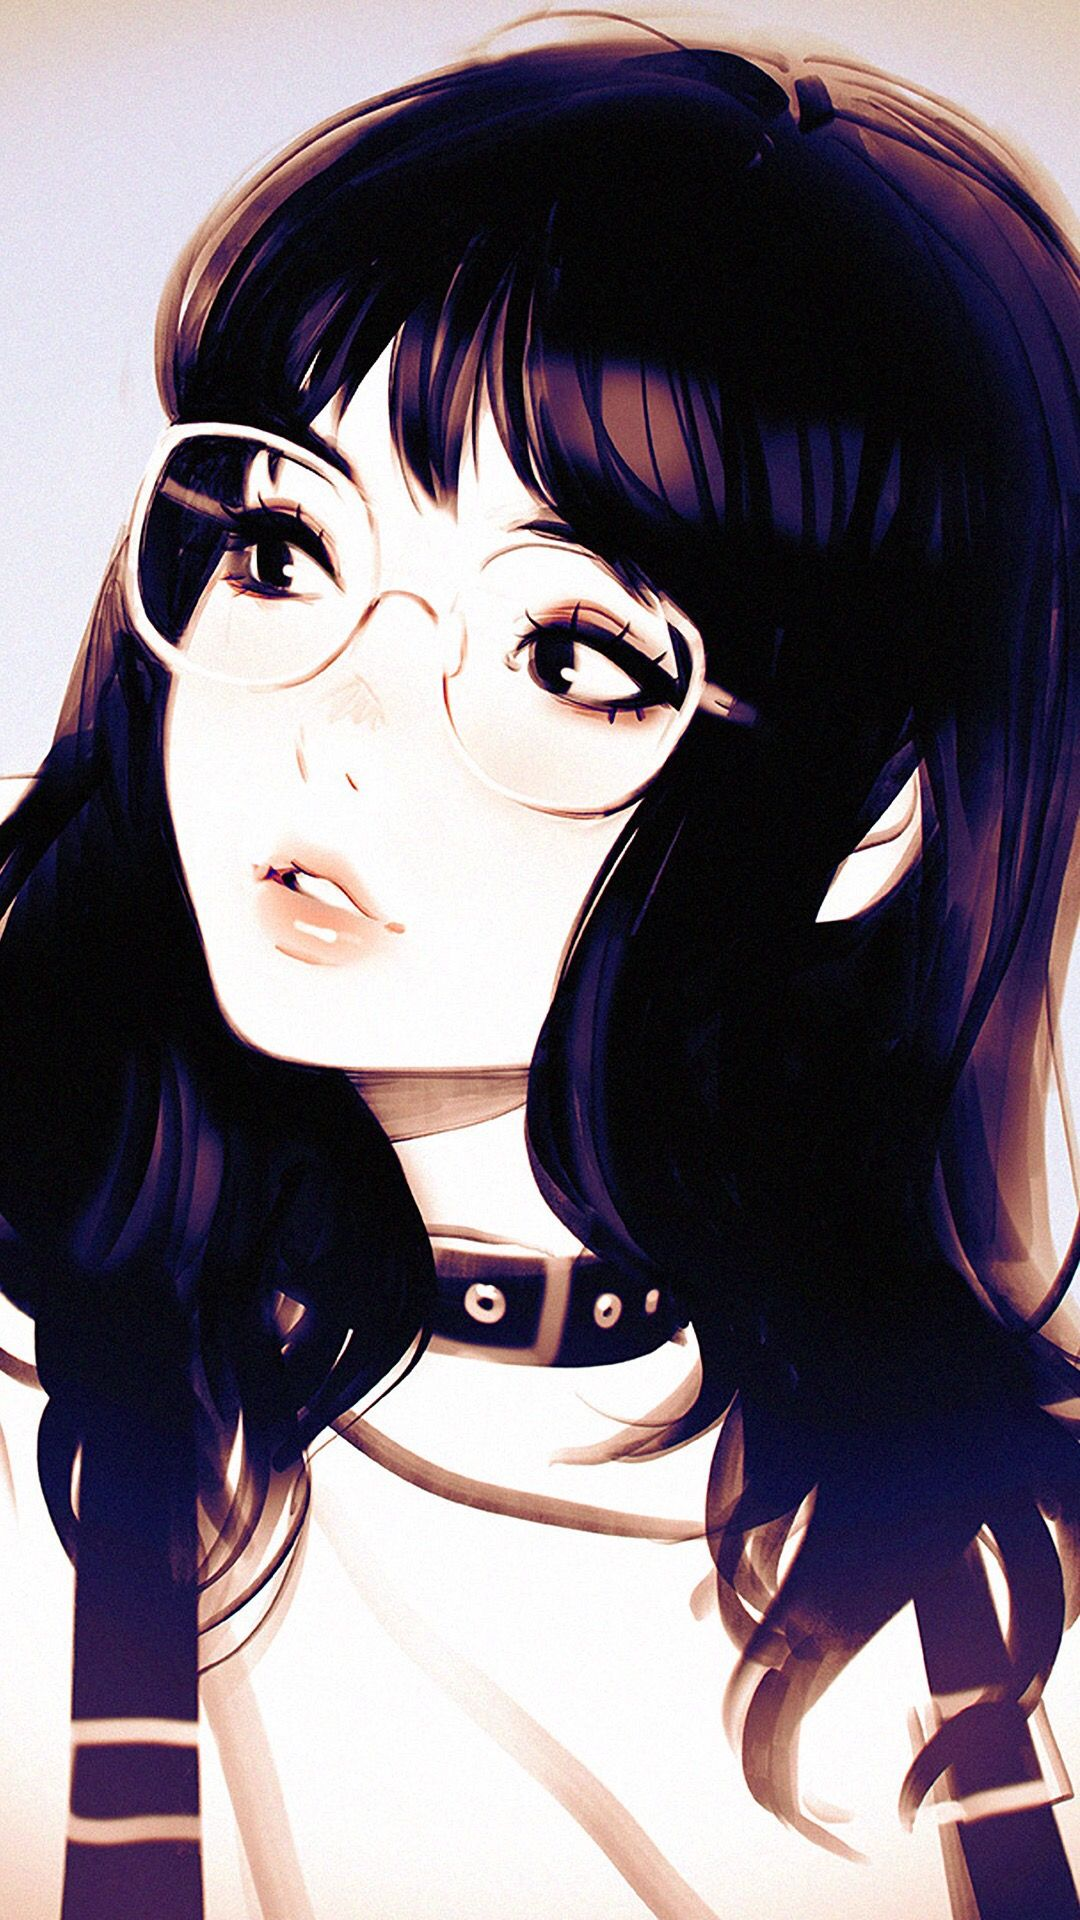 Anime Girl Spectacles